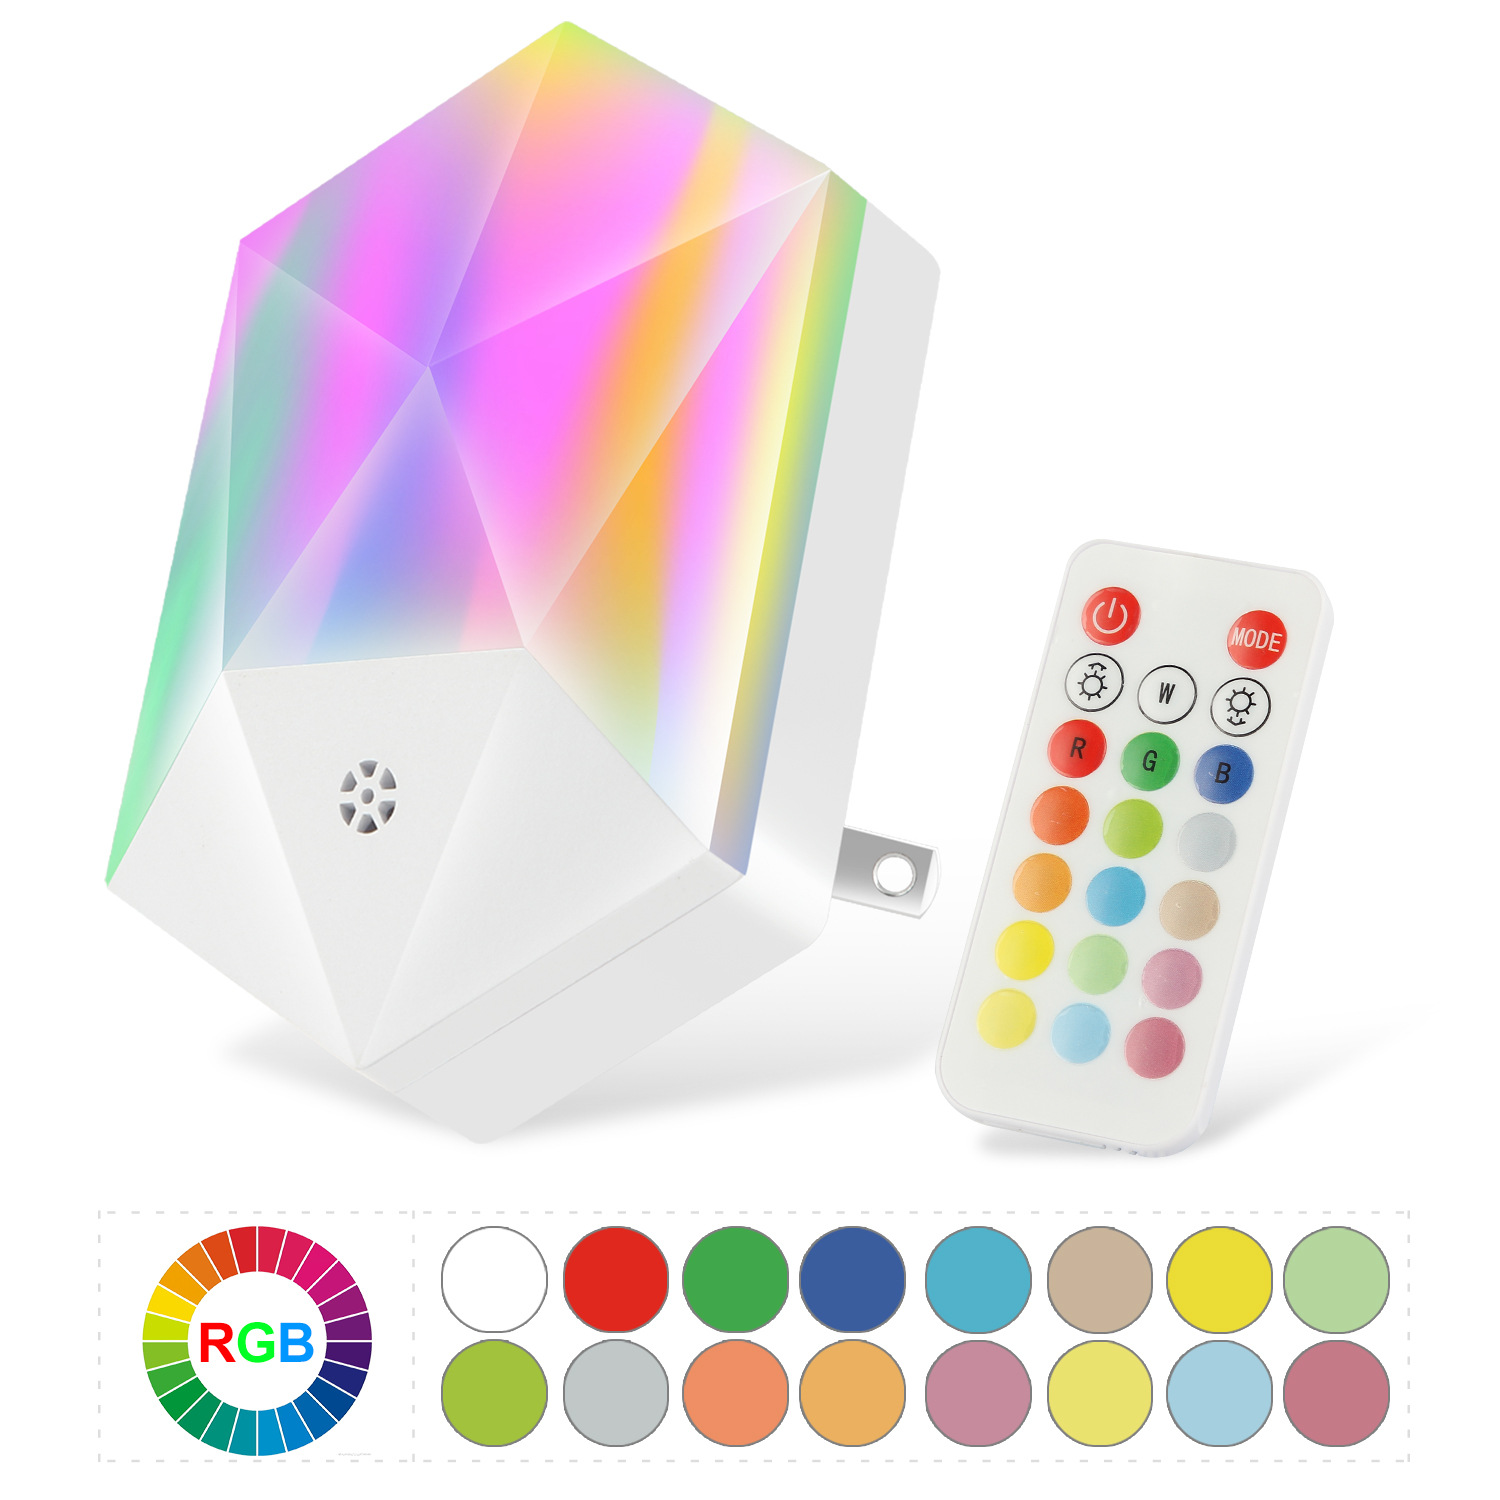 Rgb Remote Control Night Light Plug-in Bedside Bedroom Corridor Sensor Light Gift Colorful Led Atmosphere Light